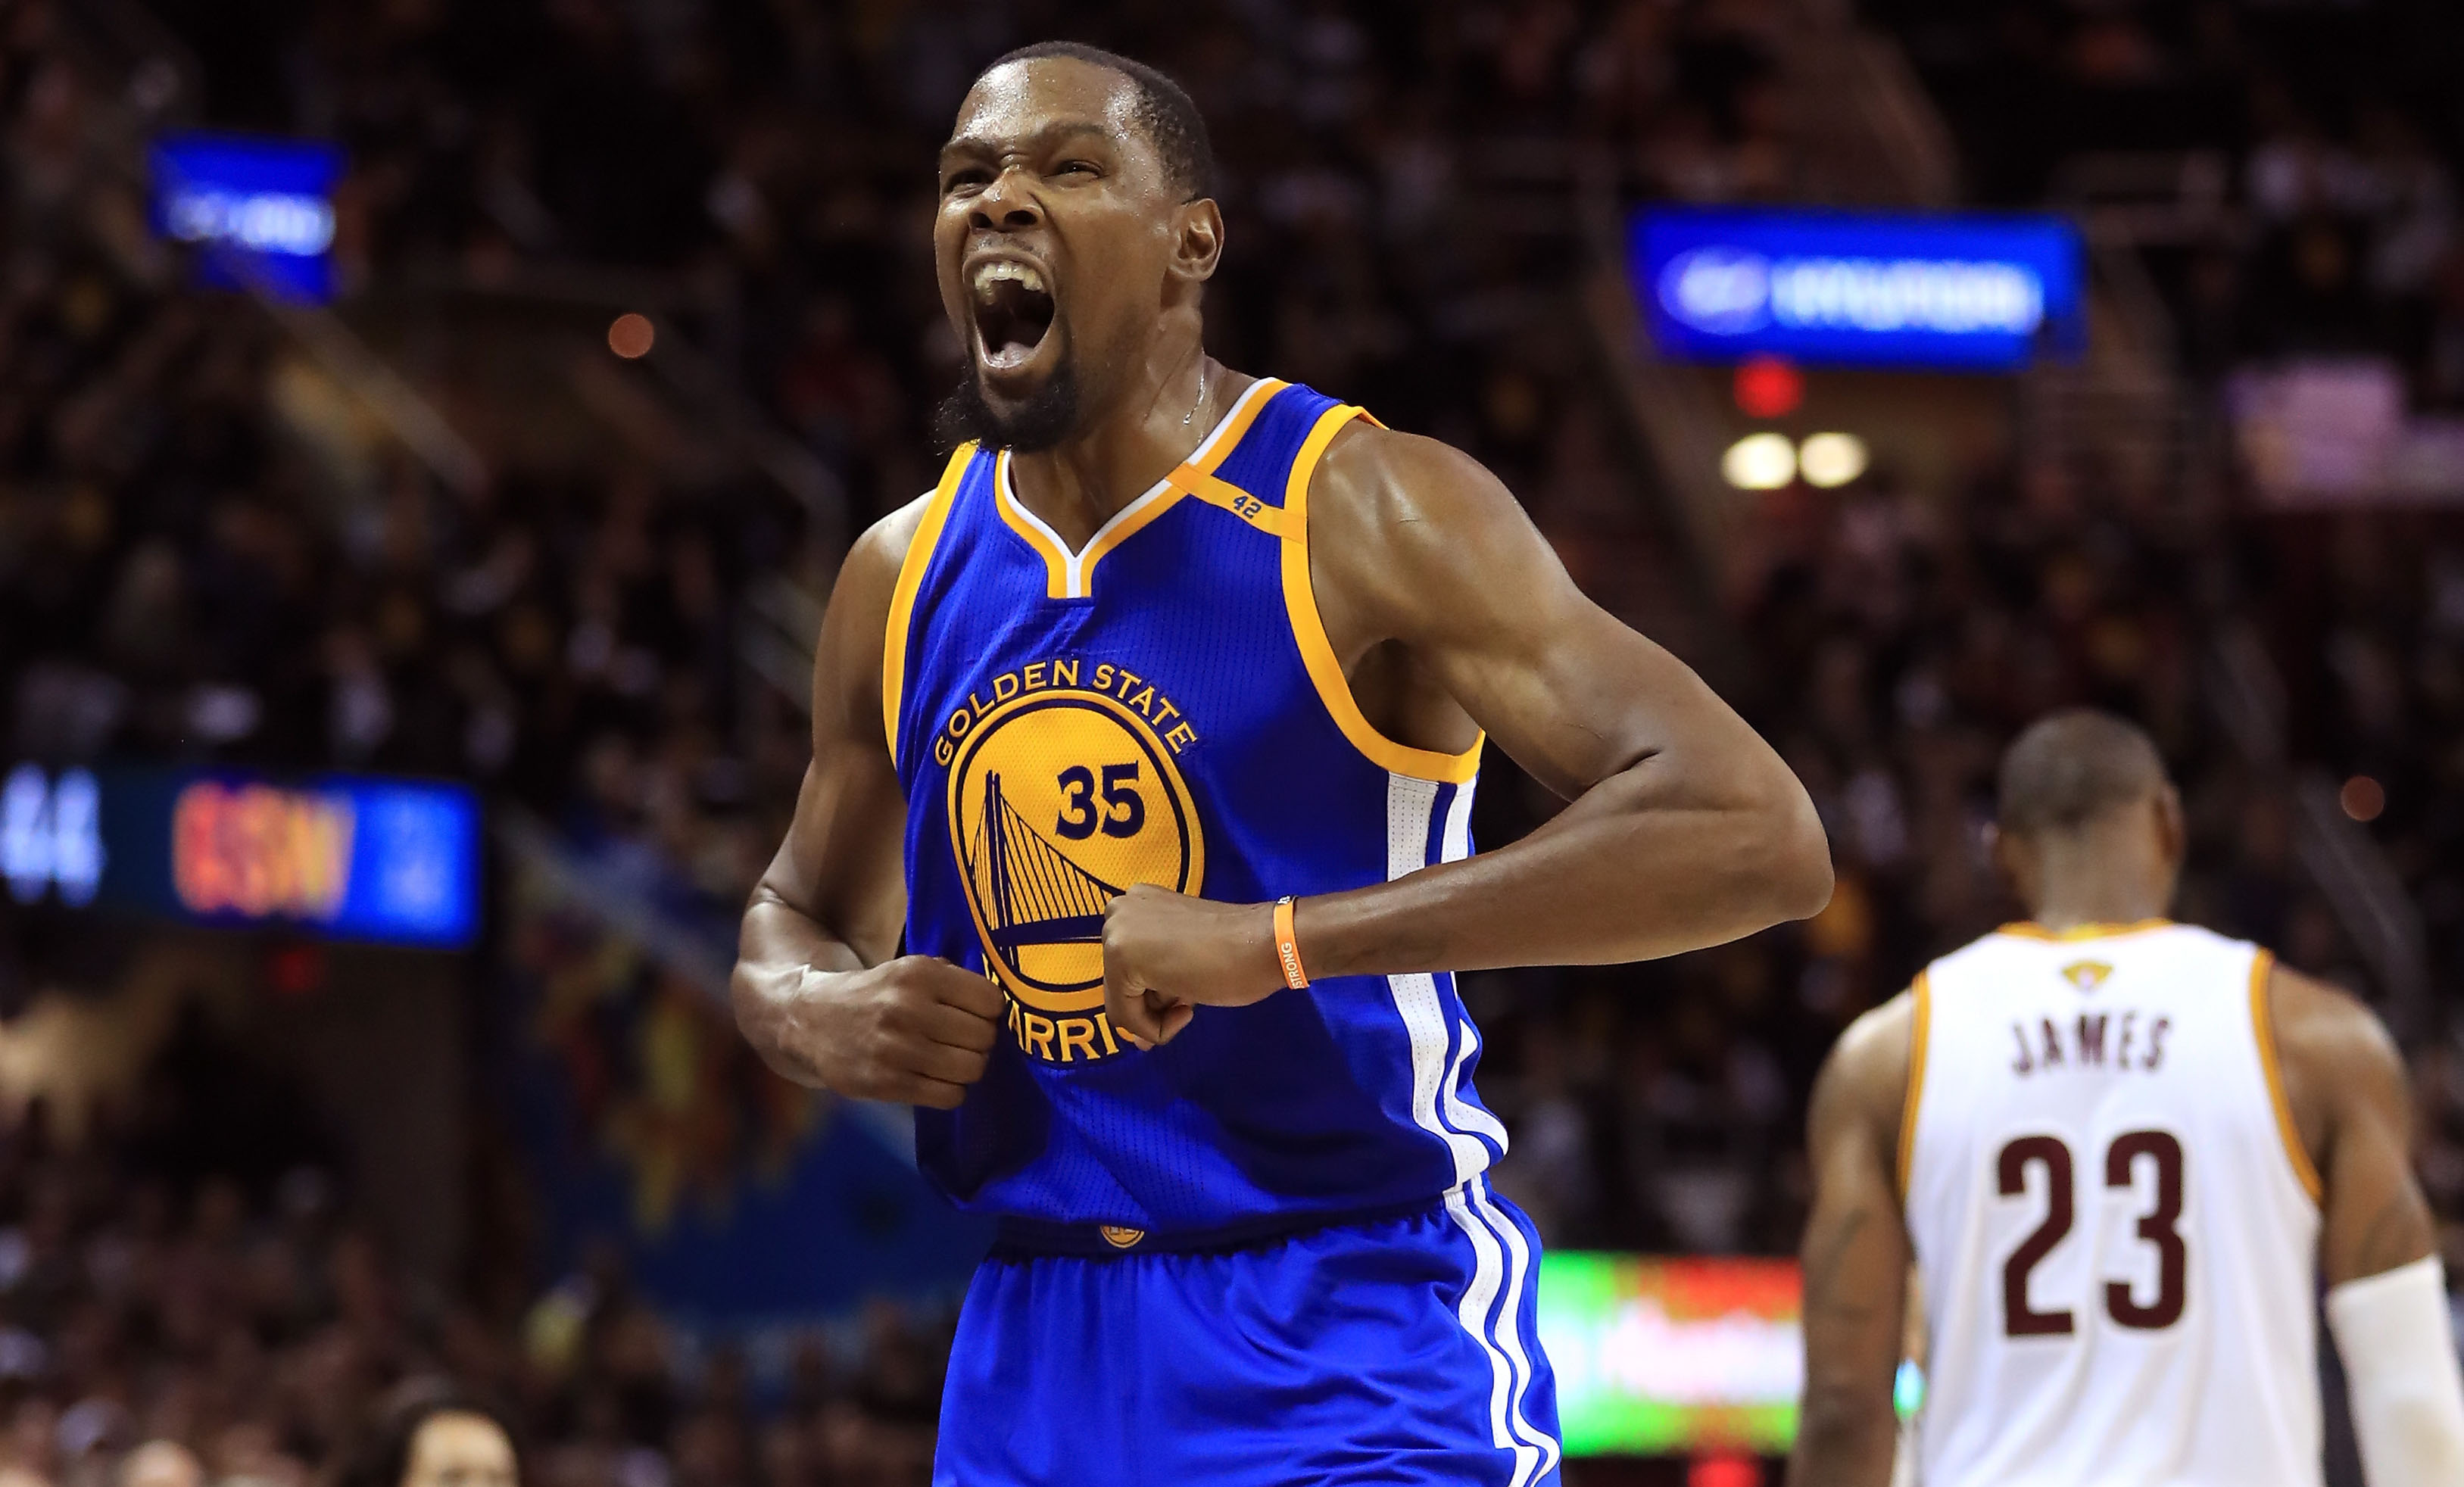 Kevin_durant_marquee_warriors